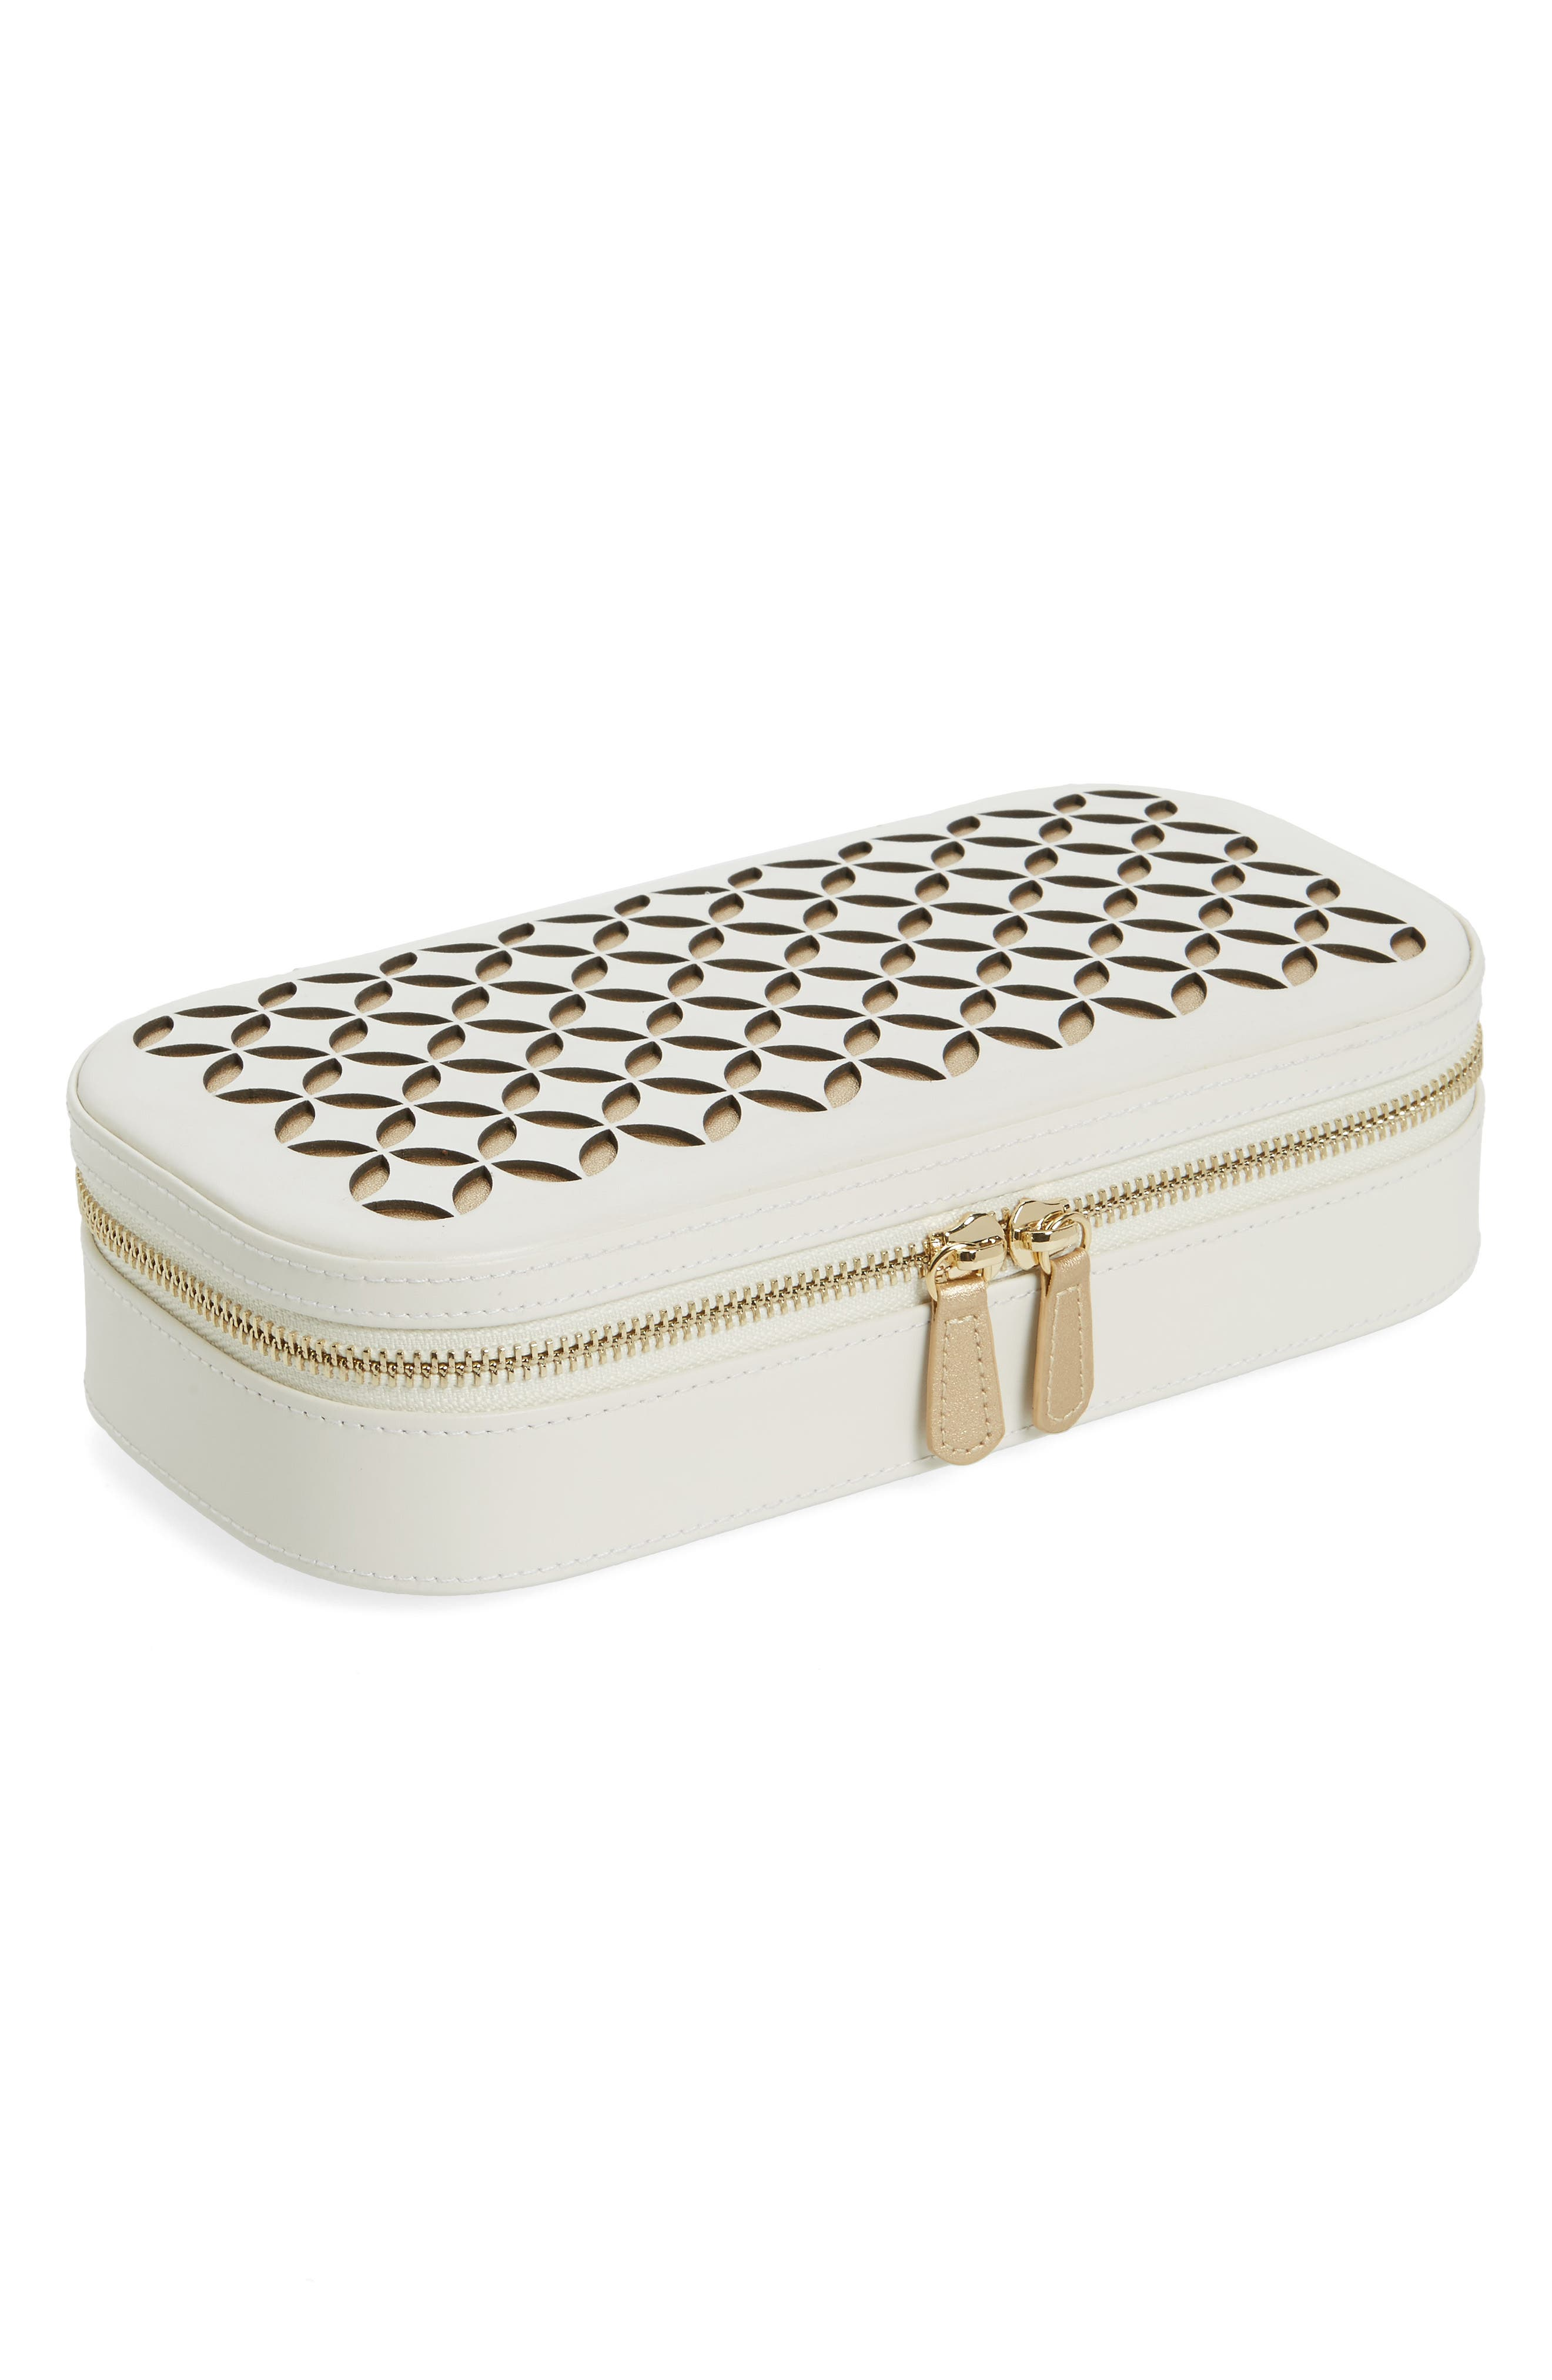 Chloe Zip Jewelry Case,                         Main,                         color, Ivory